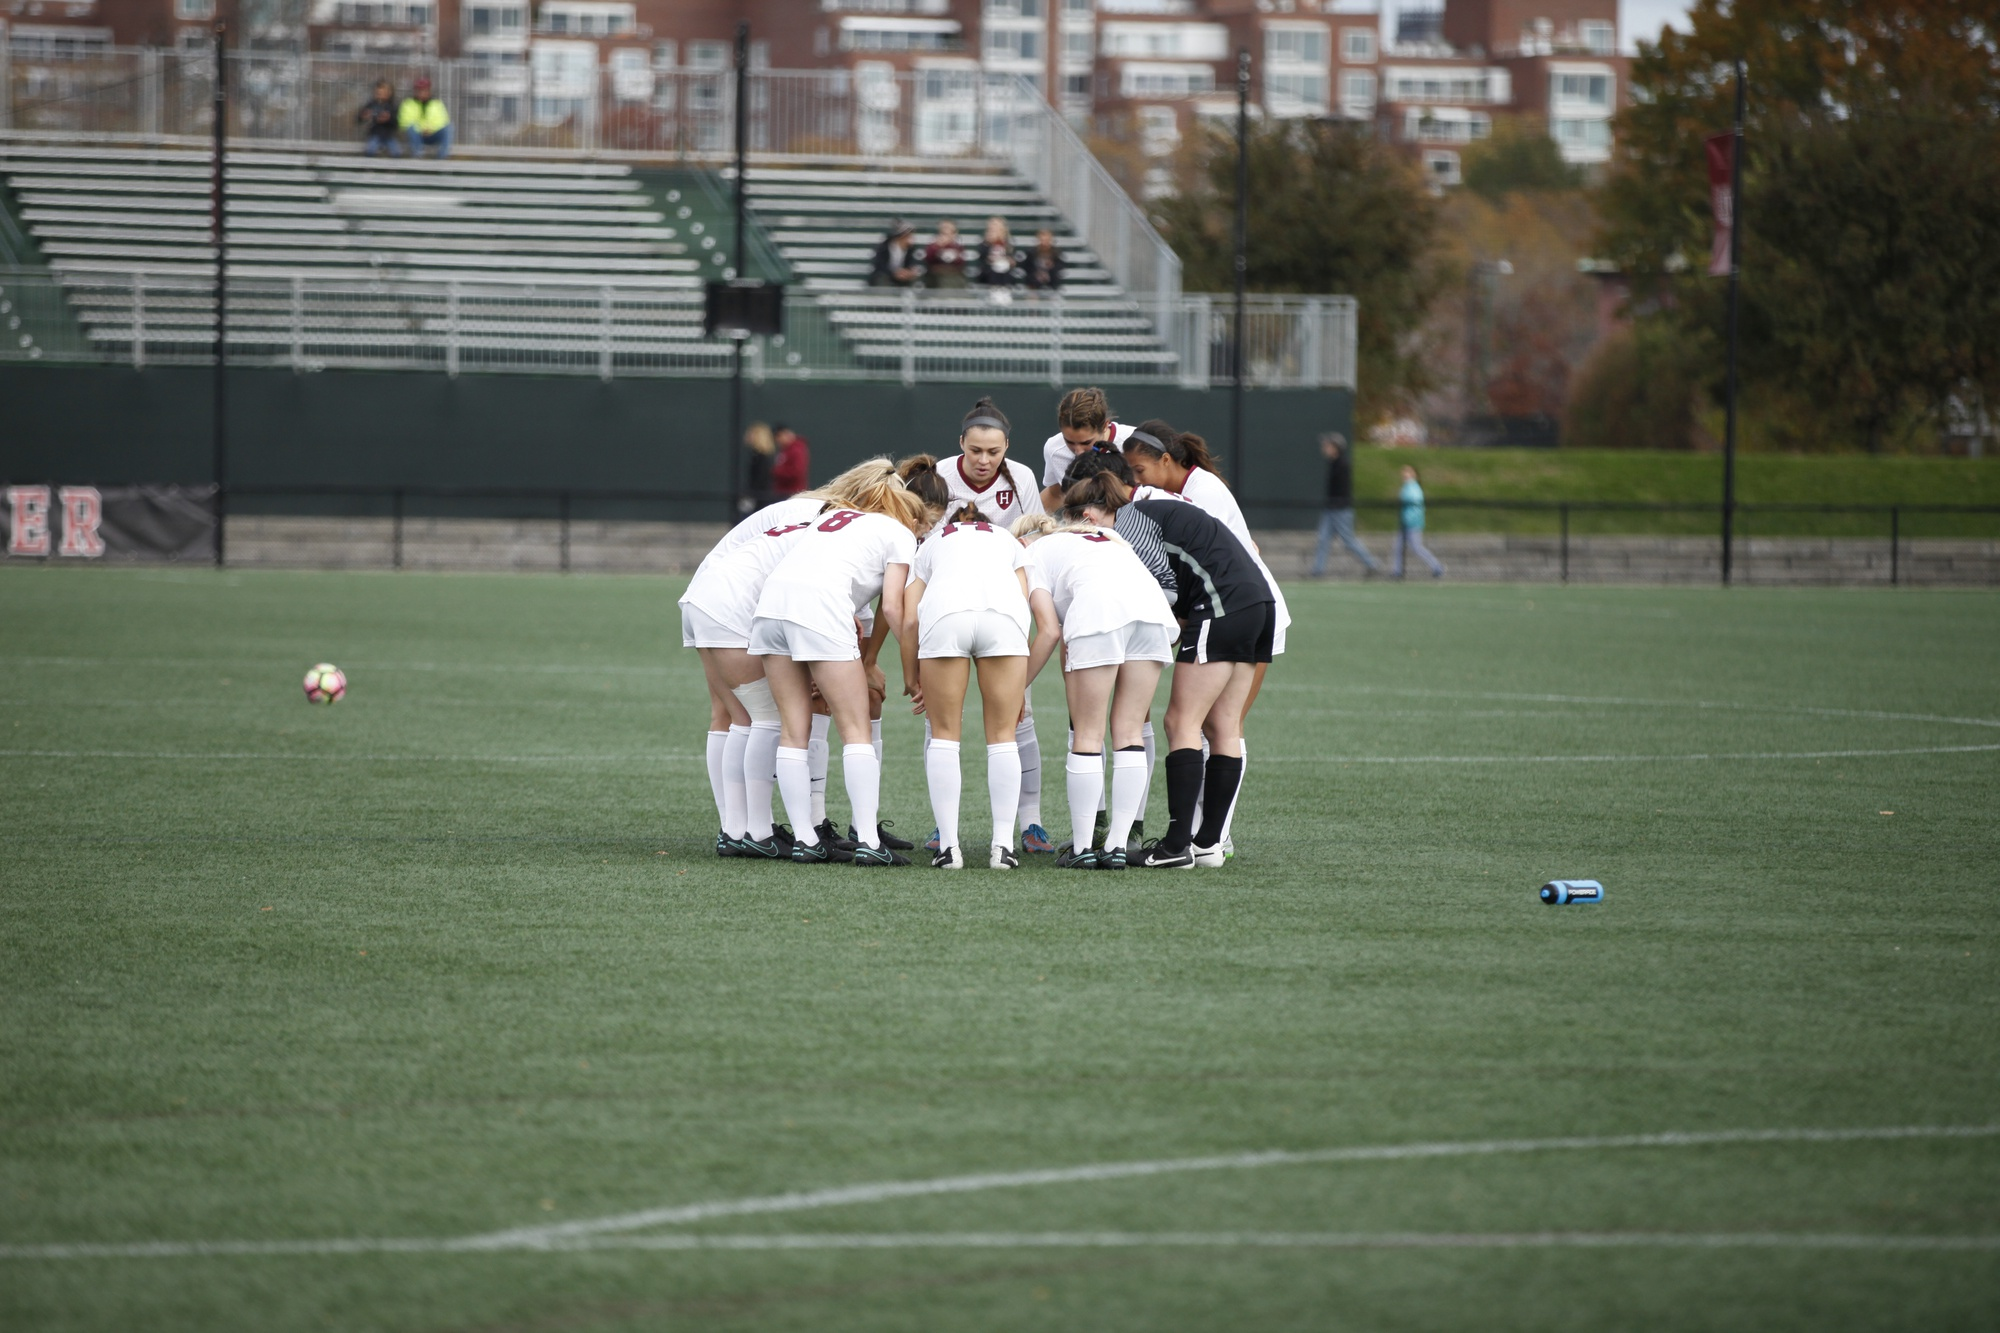 The women's soccer team dropped its conference opener to Penn, 1-0, on Saturday.